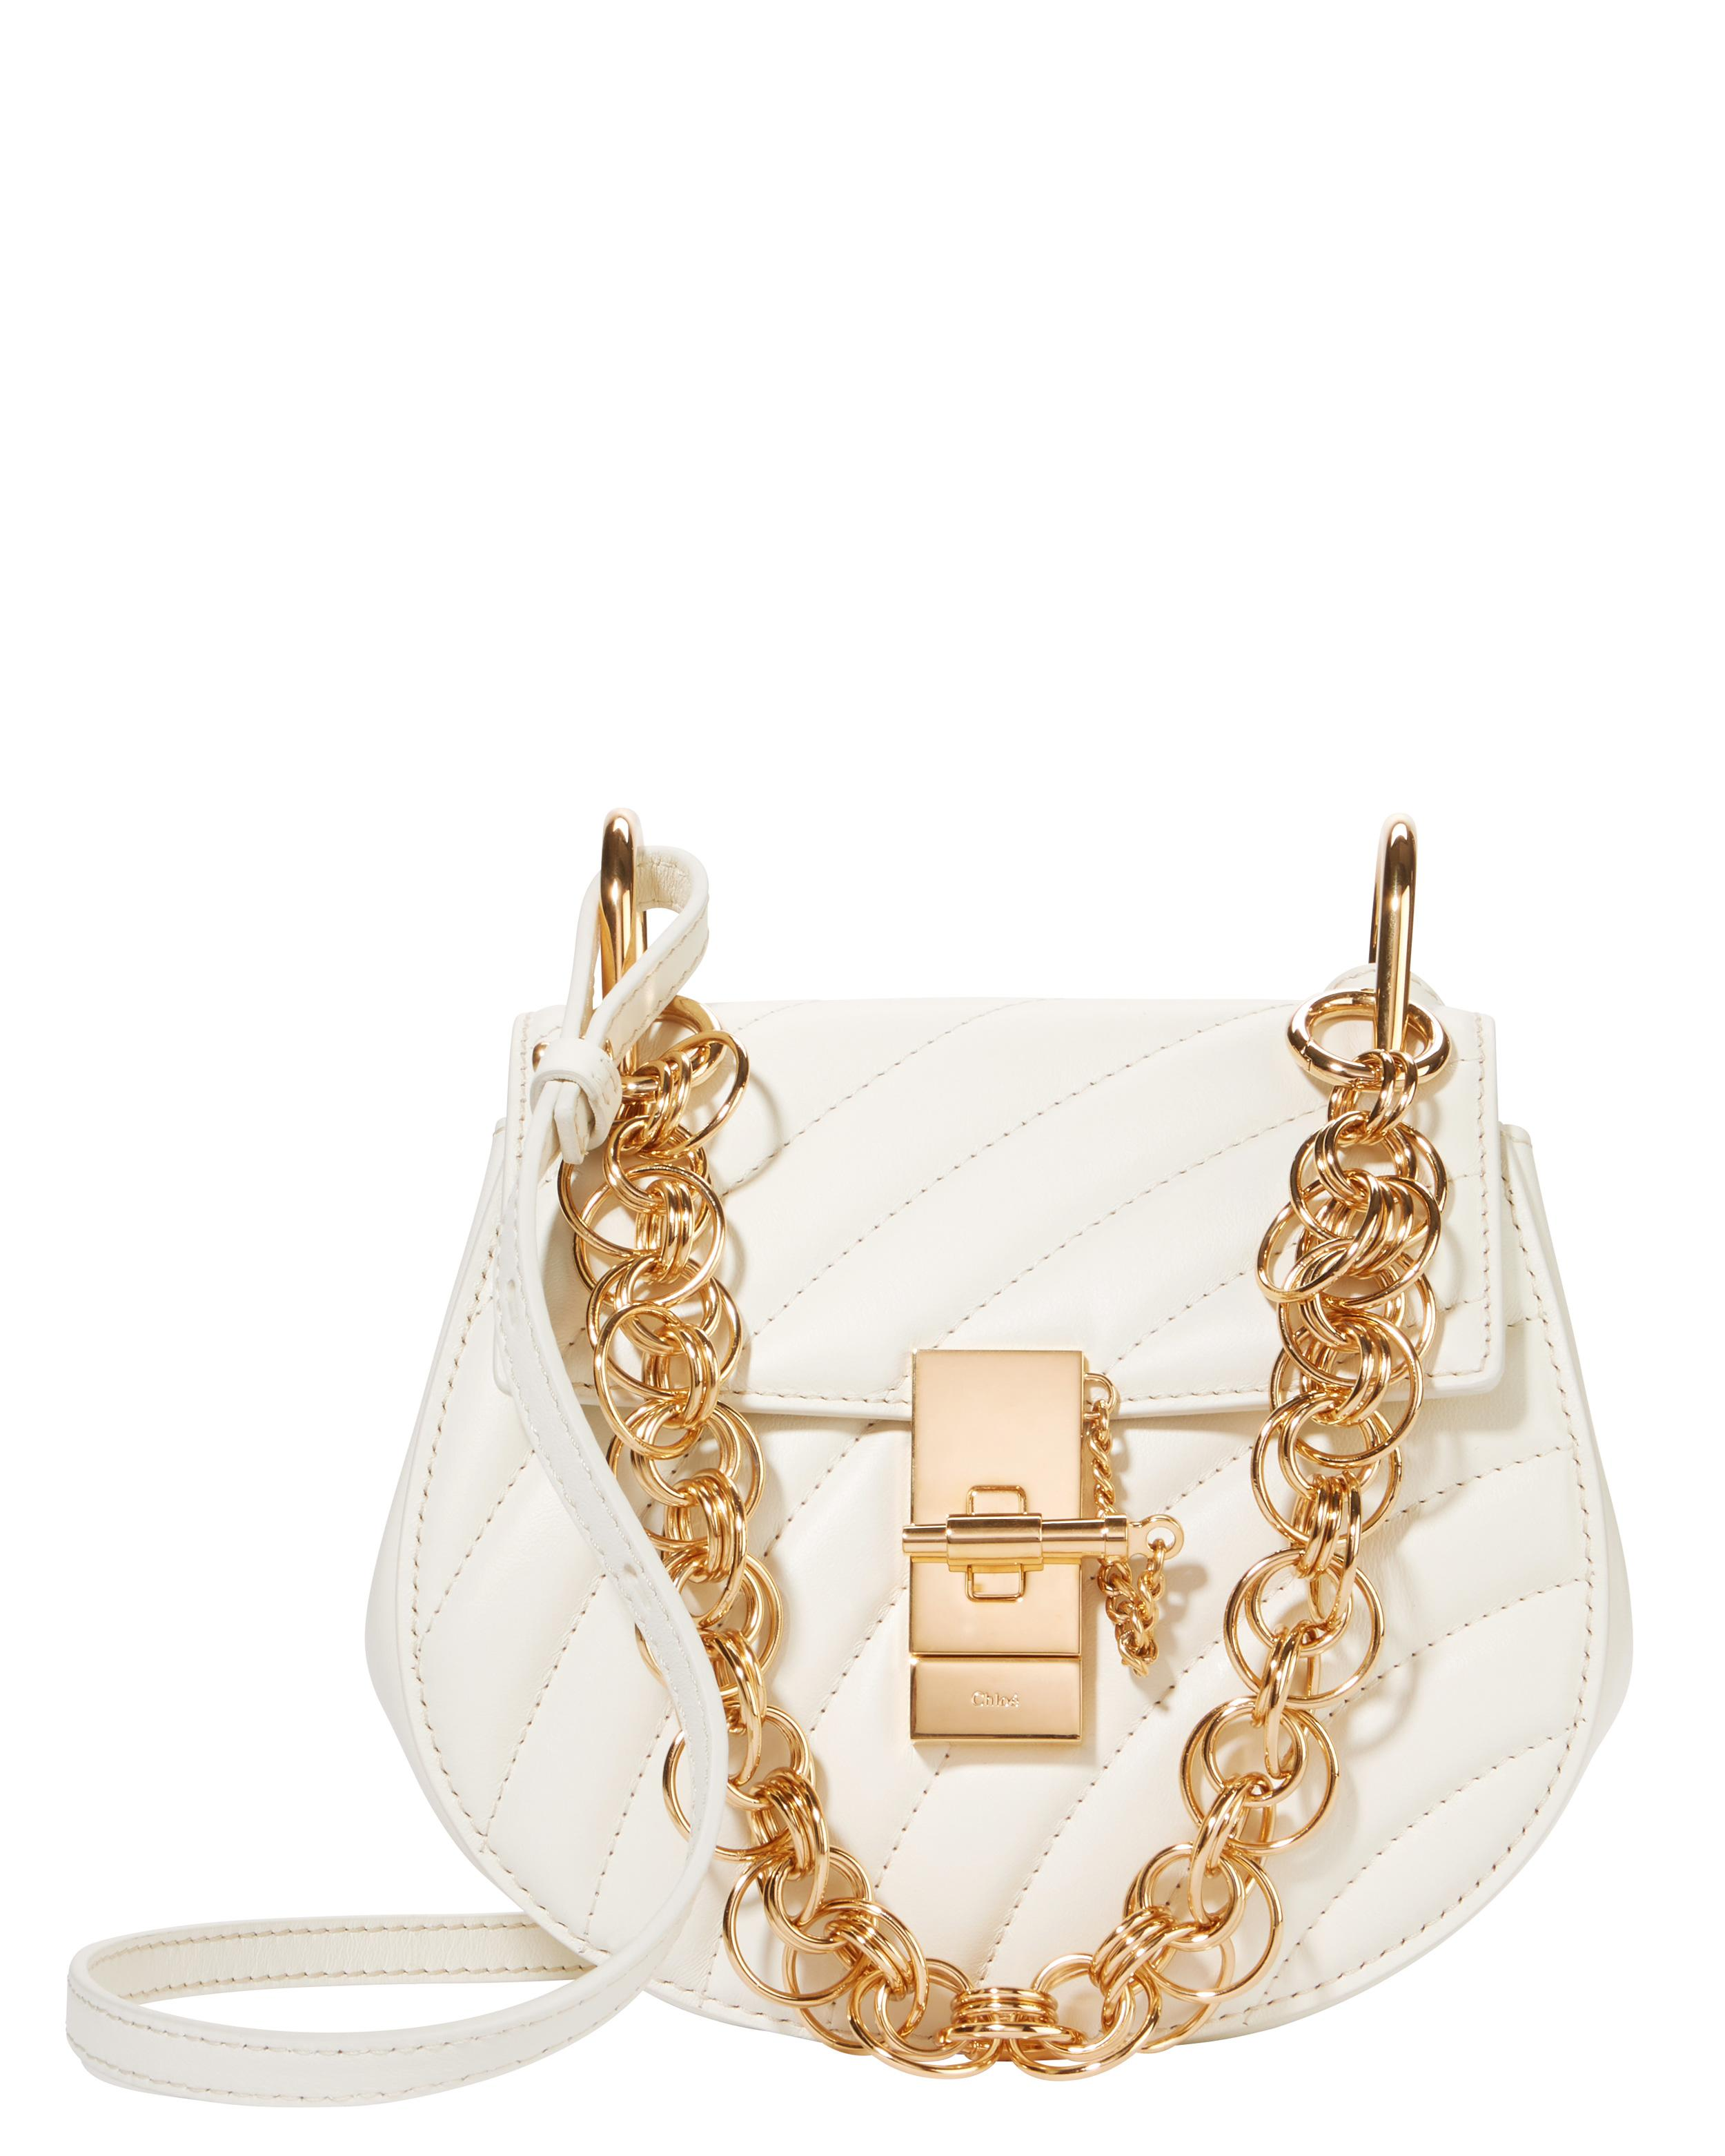 ChloÉ Chloé Drew Quilted Small Shoulder Bag White